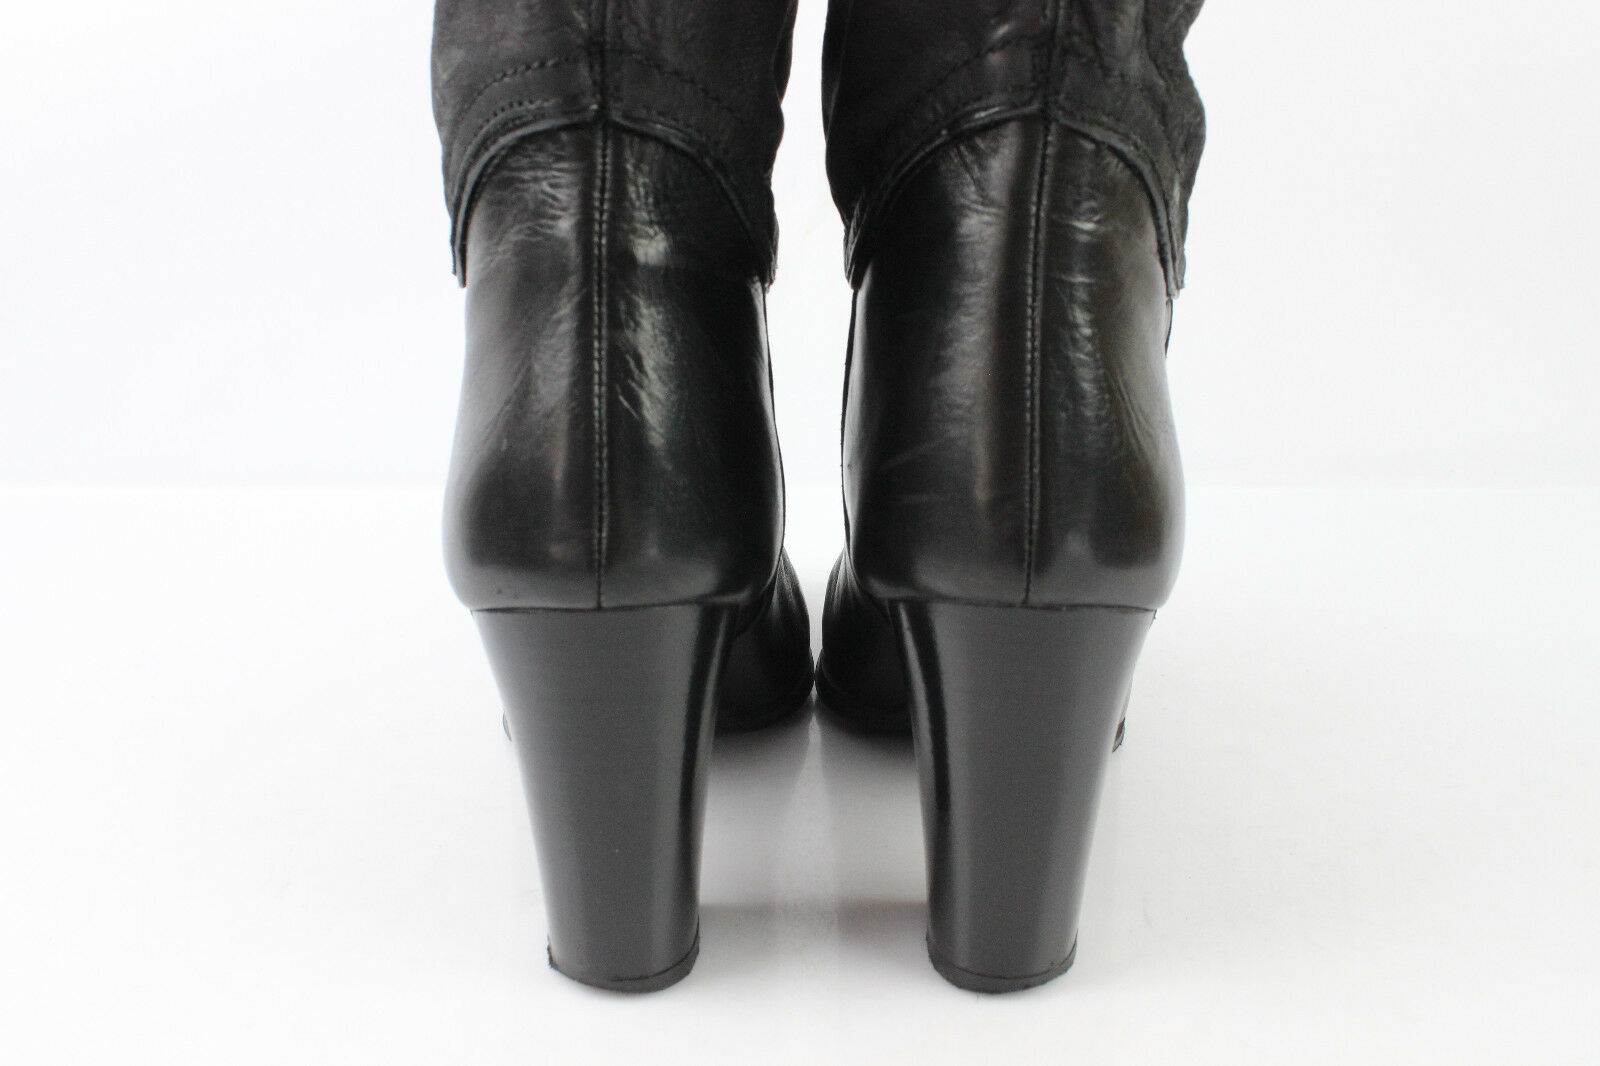 Boots High High High Knee BUTTERFLY Black Leather T 38 VERY GOOD CONDITION d1dfa8